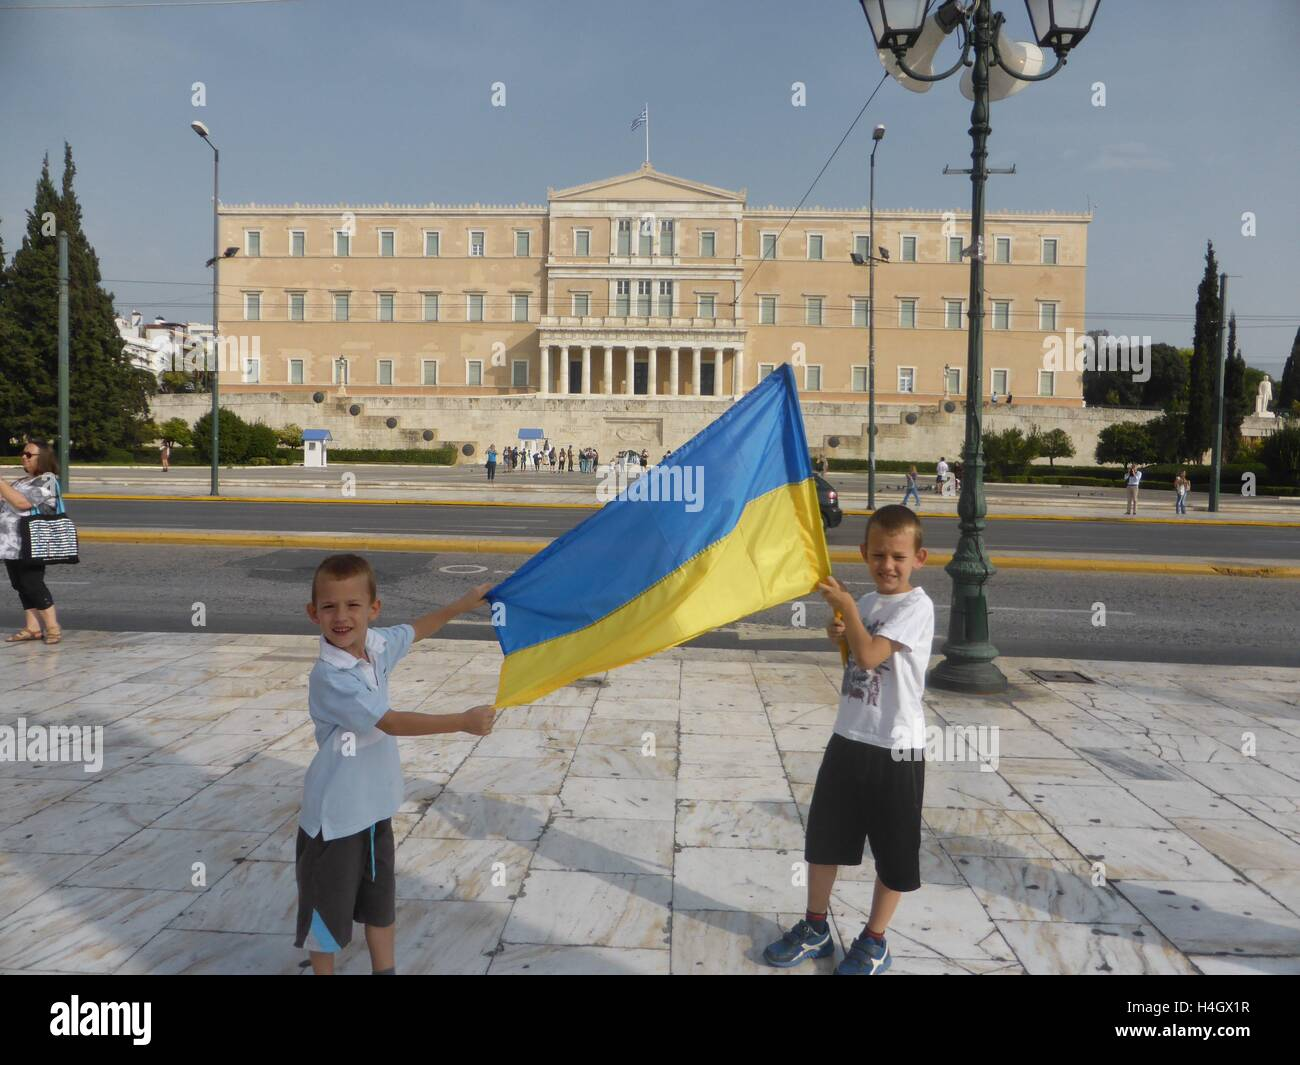 Athens, Greece. 16th Oct, 2016. 2 boys hold an Ukranian flag in front of the Greek parliament. Ukranian people demonstrate - Stock Image